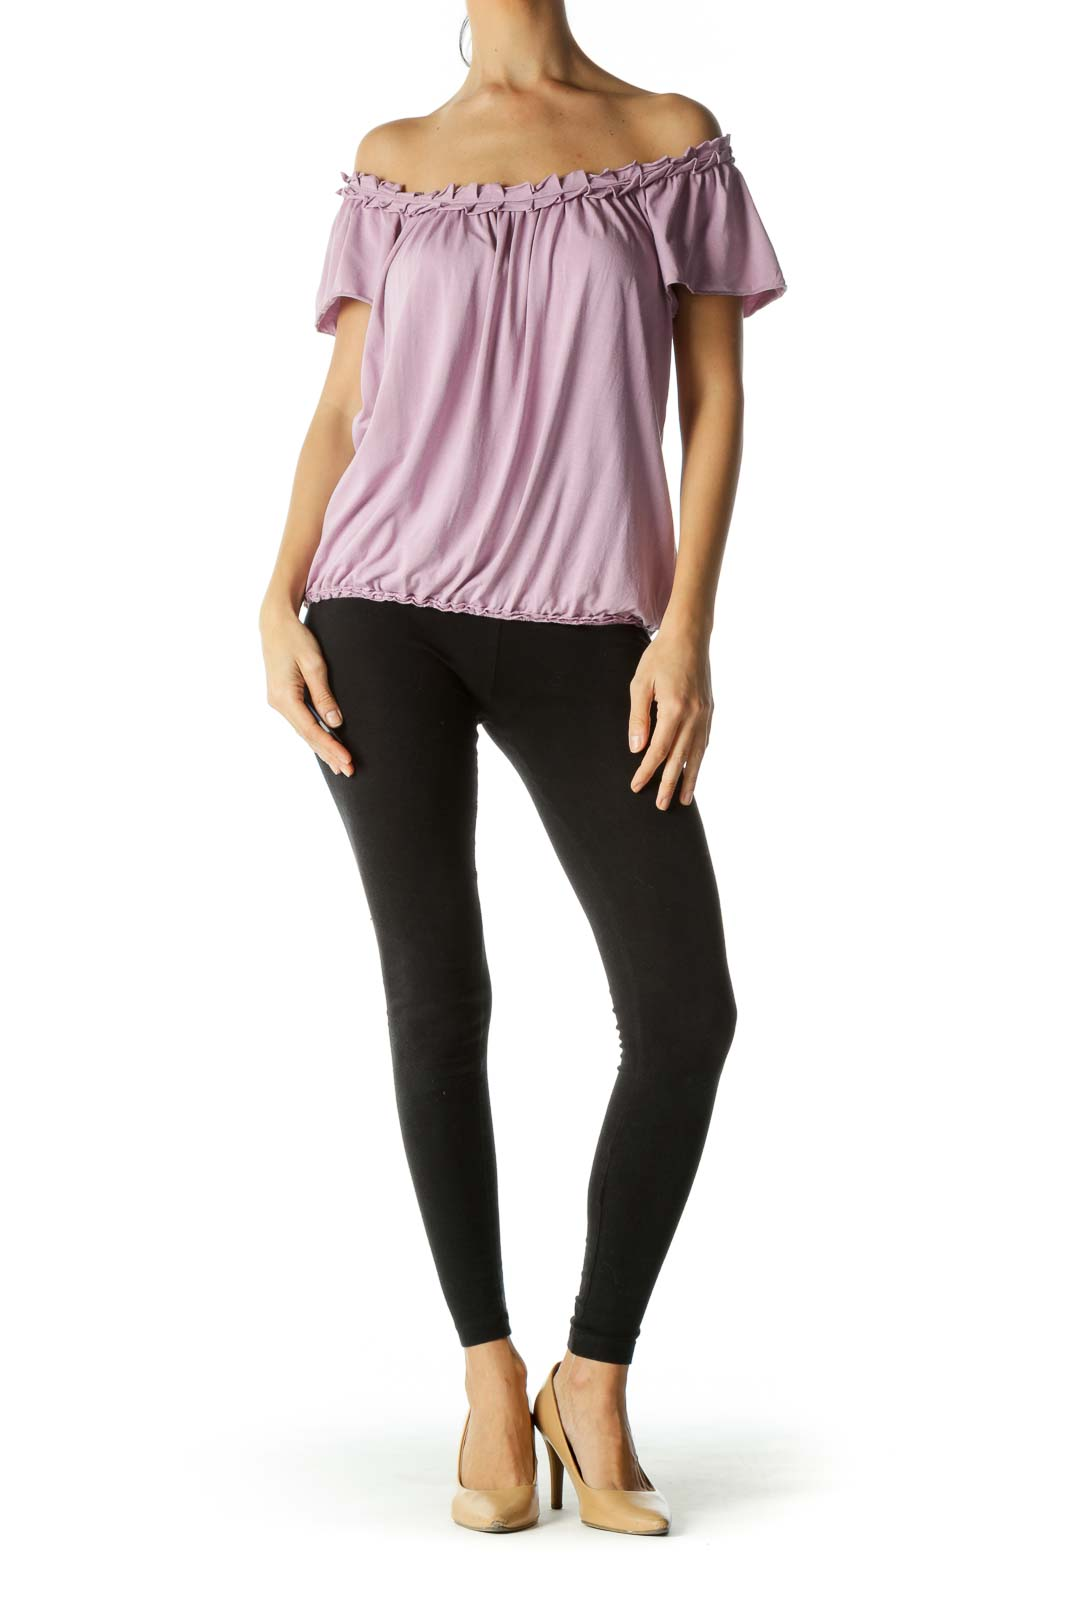 Purple Ruffled Collar Elastic Waist Top